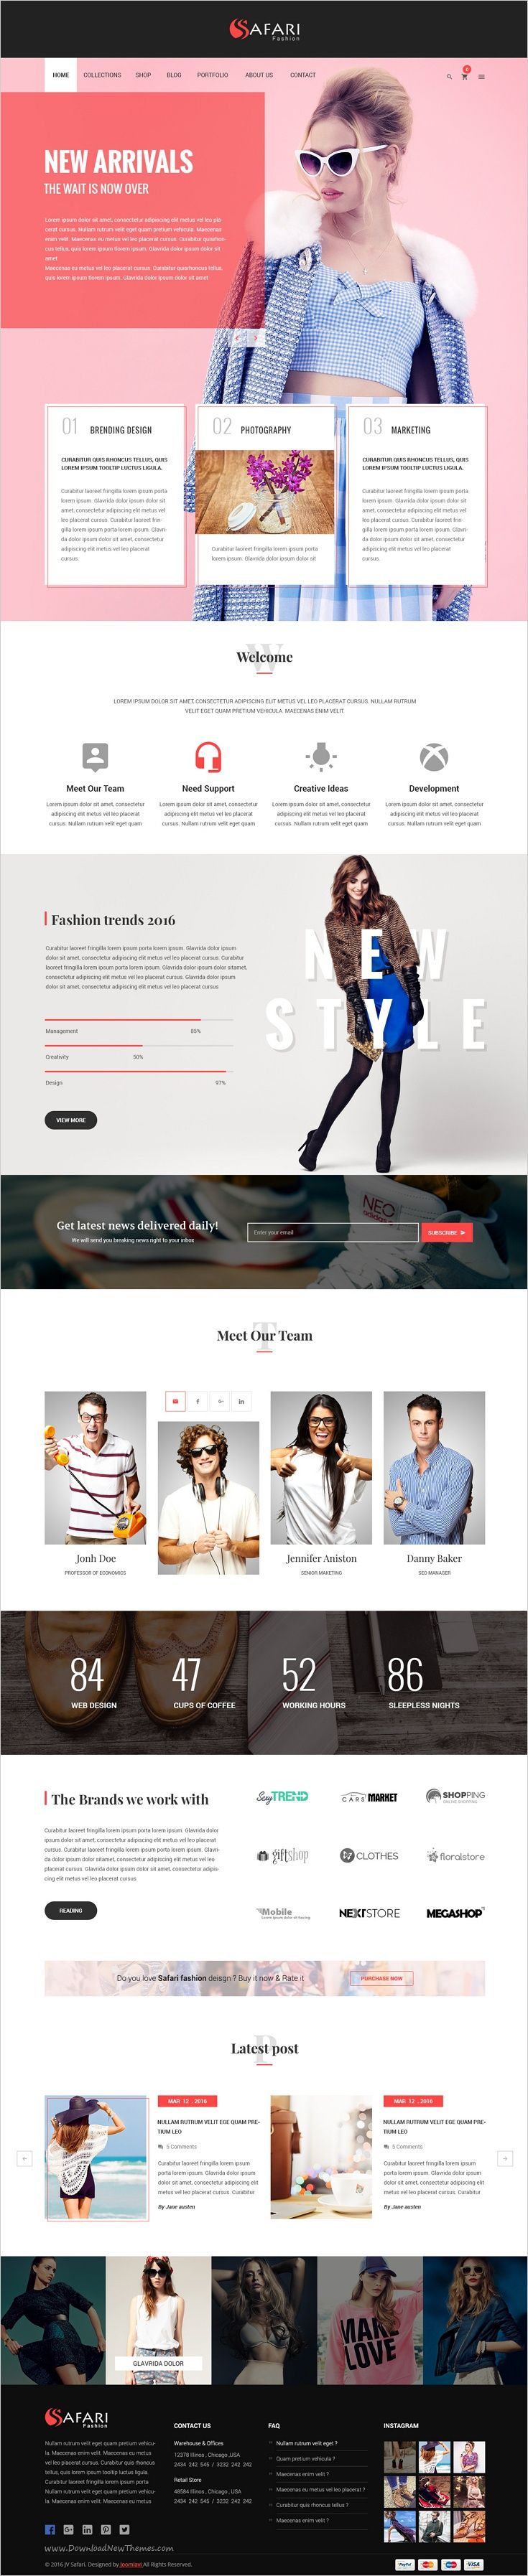 Safari is a clean and modern #PSD template for for multipurpose #fashion #store website with 6 unique homepage layouts and 51 organized PSD pages download now➯ https://themeforest.net/item/safari-multipurpose-psd-template-/16861892?ref=Datasata